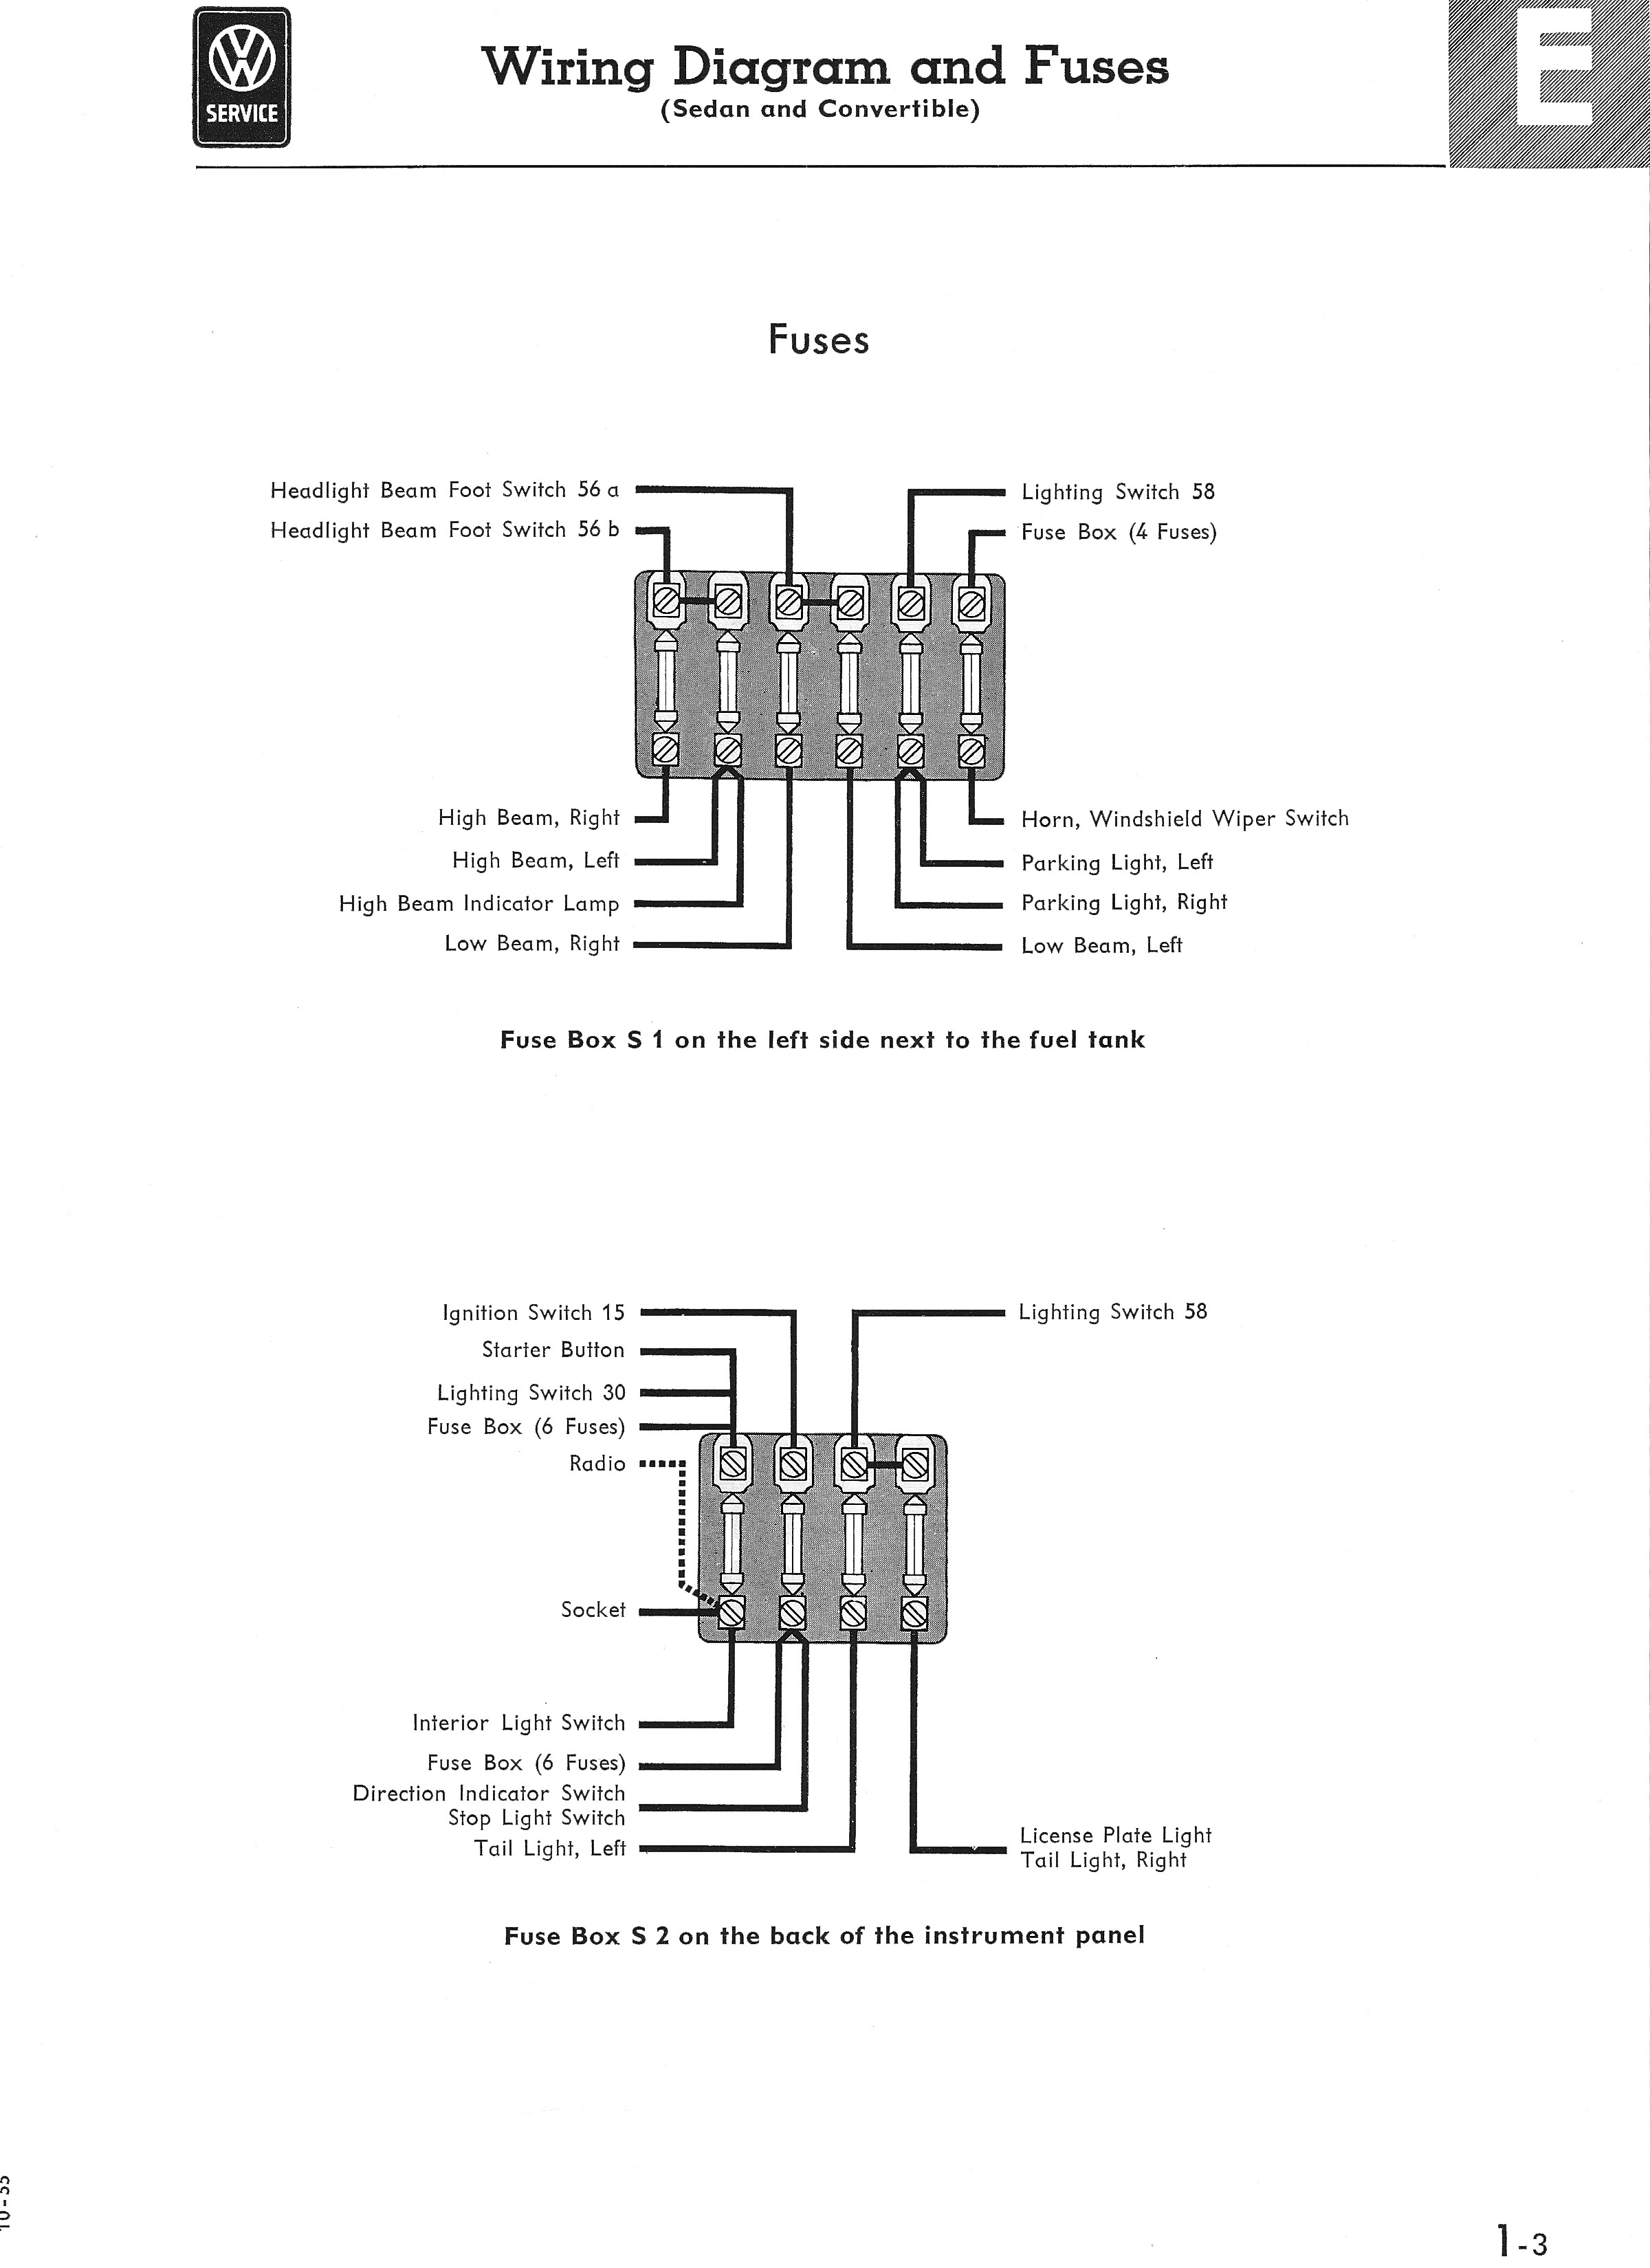 Bug Fuses Dpi on 1949 chevy wiring diagram